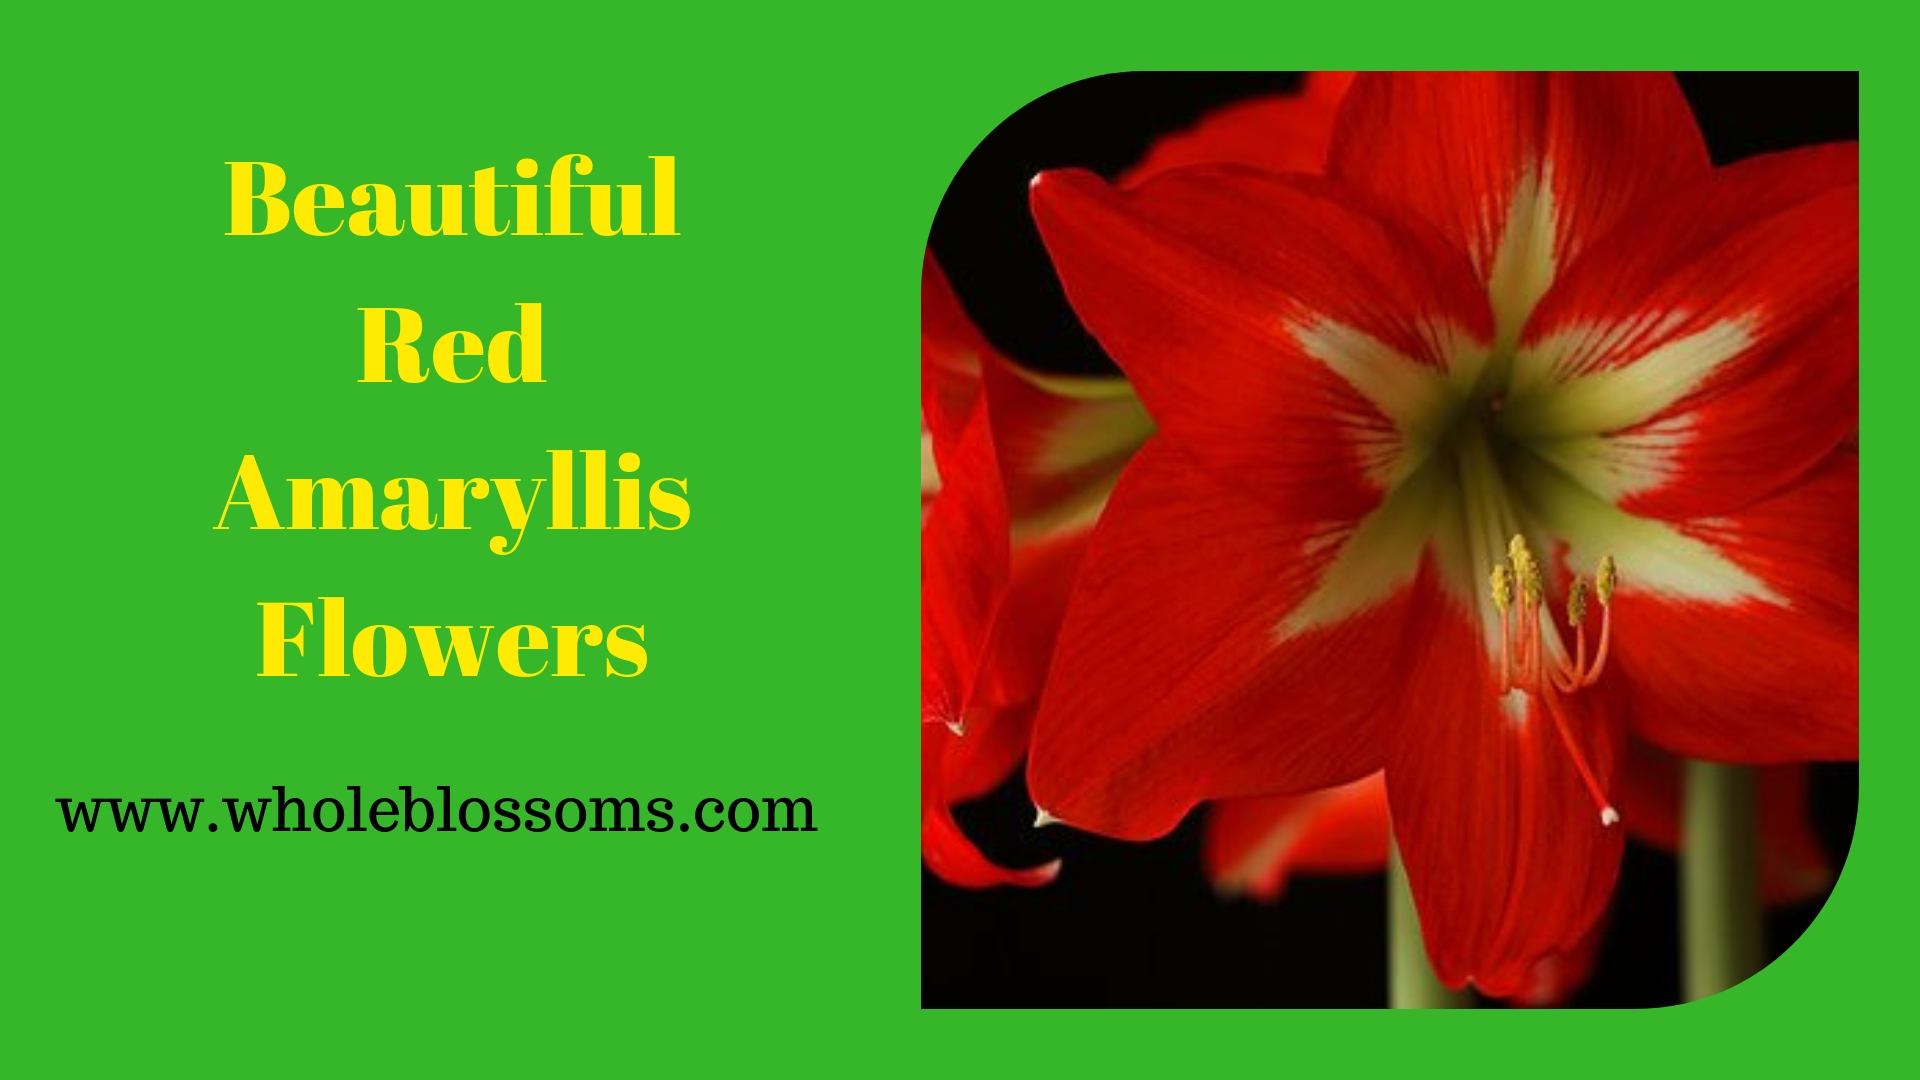 Select and Buy Amaryllis Flowers for Festive Decorations